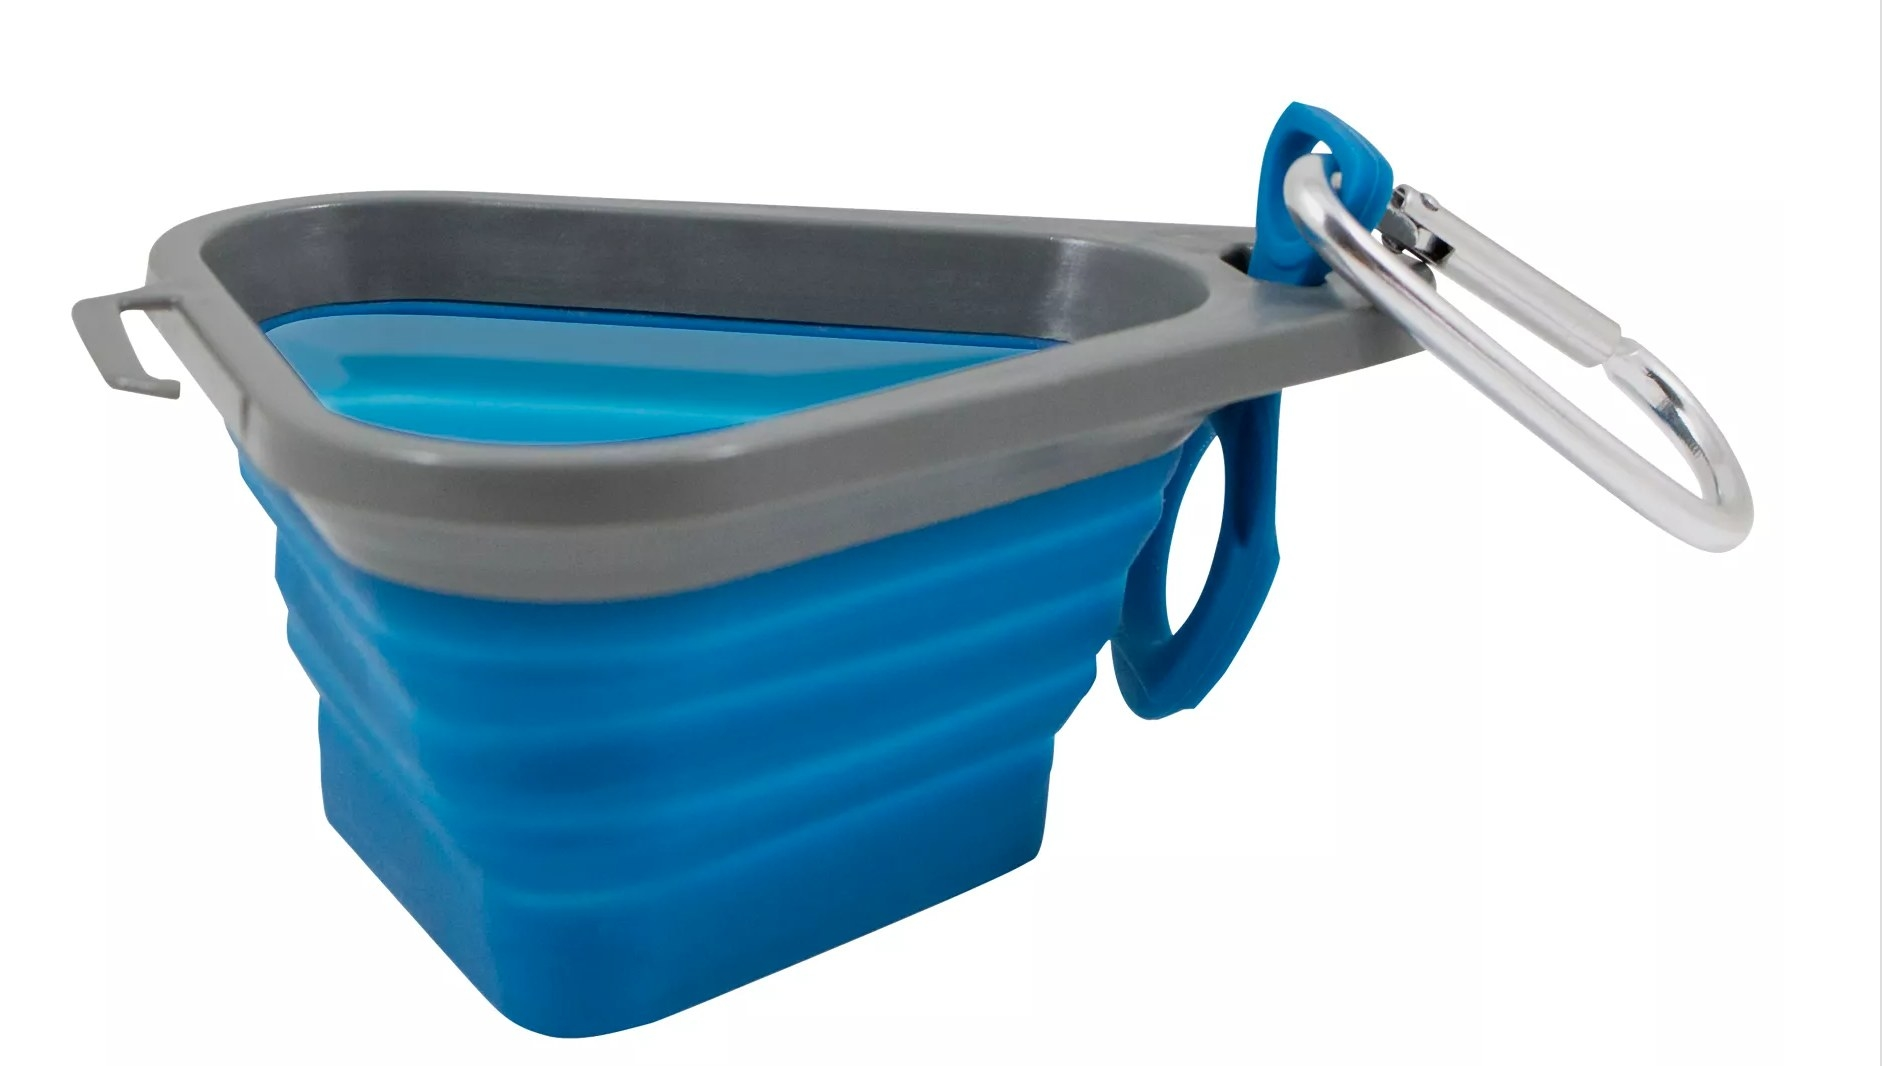 the collapsible dog bowl in blue